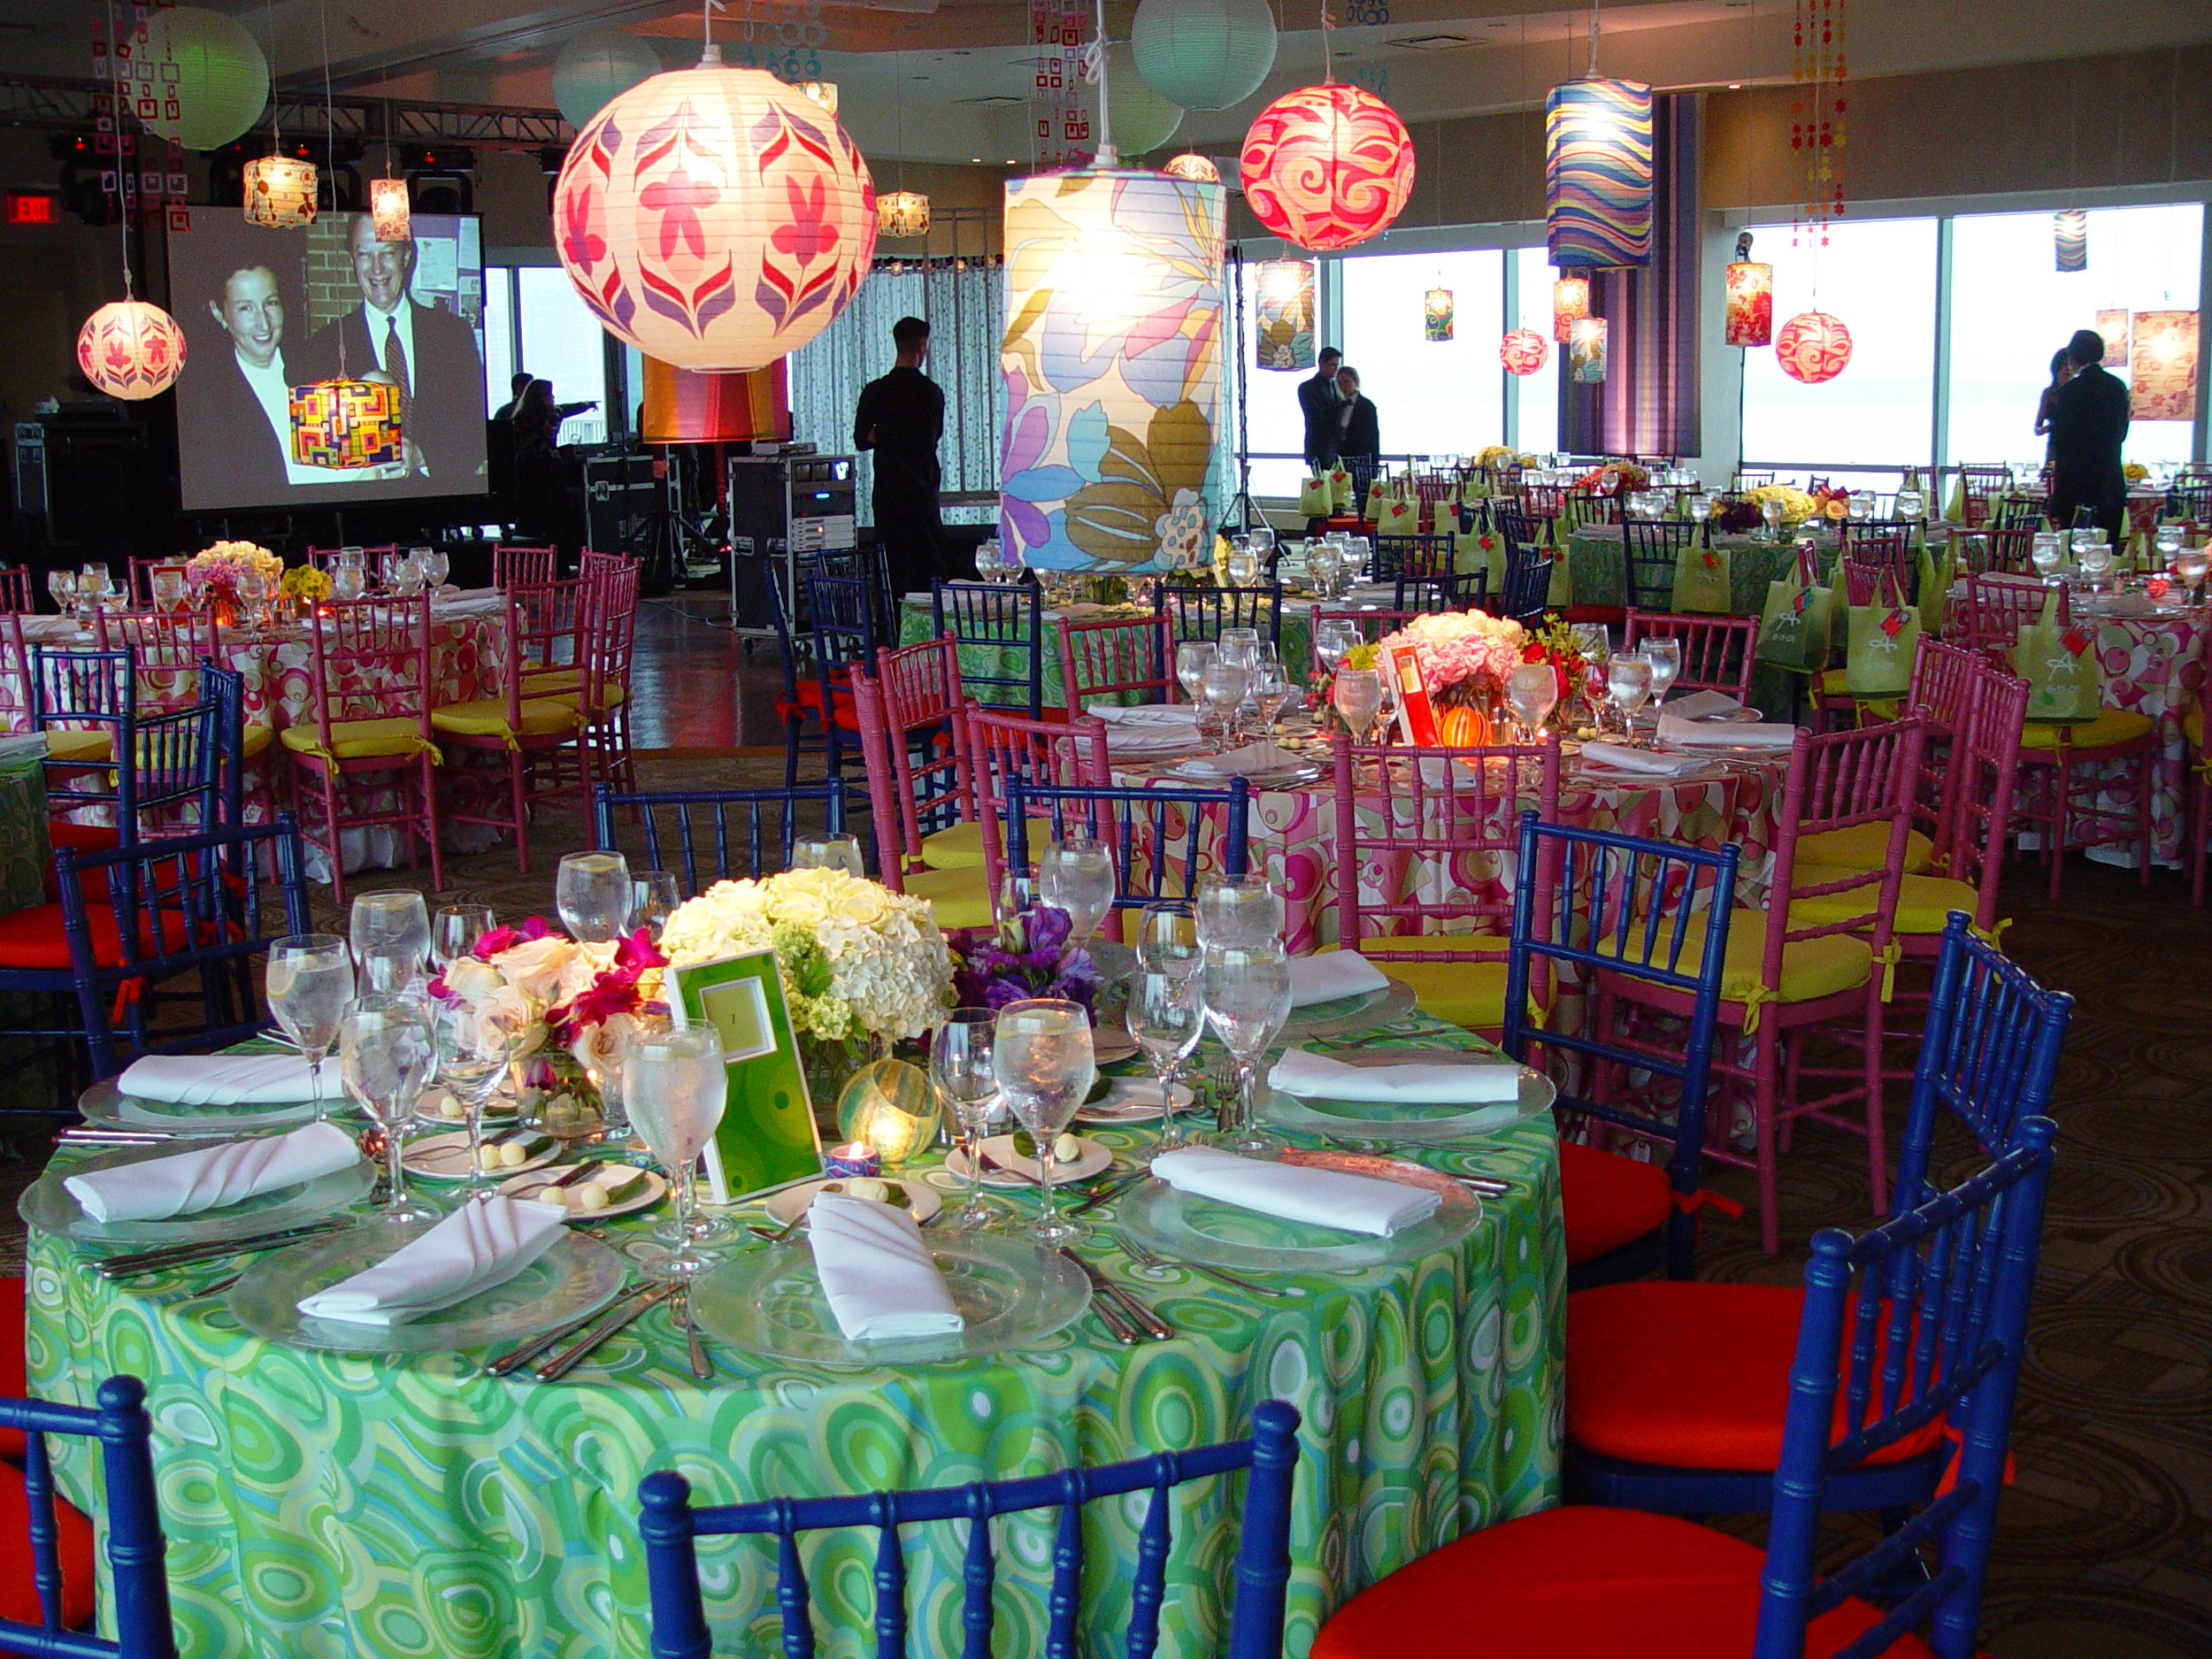 NJ+NY+PA+event+decor+design+Bat+mitzvah+decorations+rentals+eggsotic+events.jpg